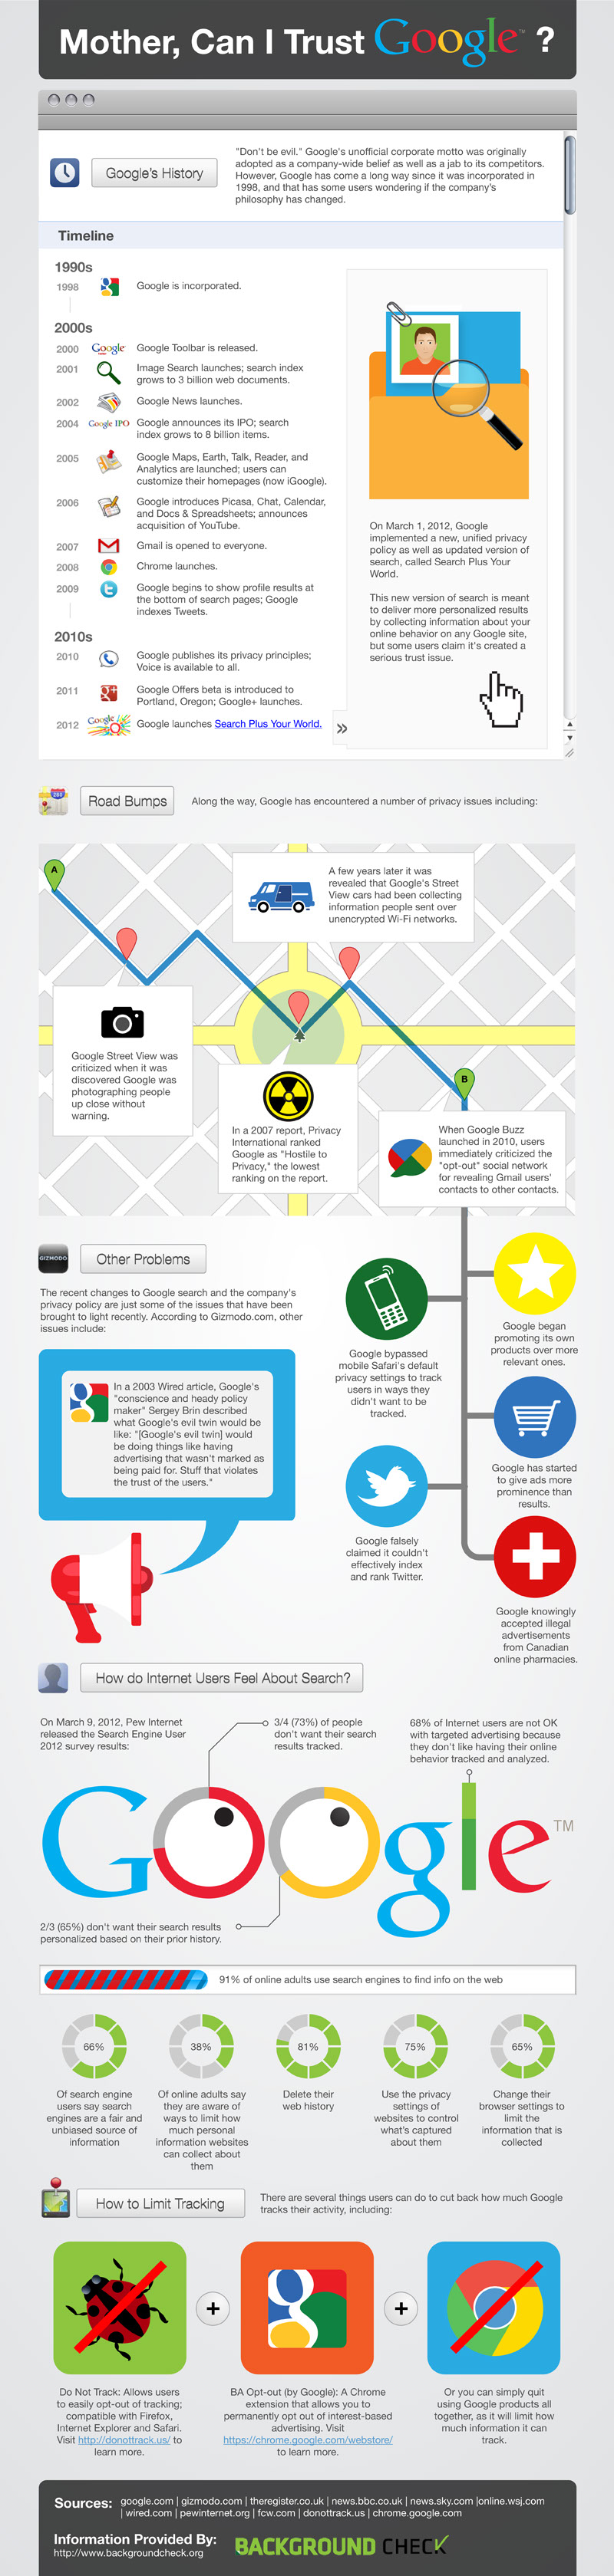 Can-I-Trust-Google-infographic